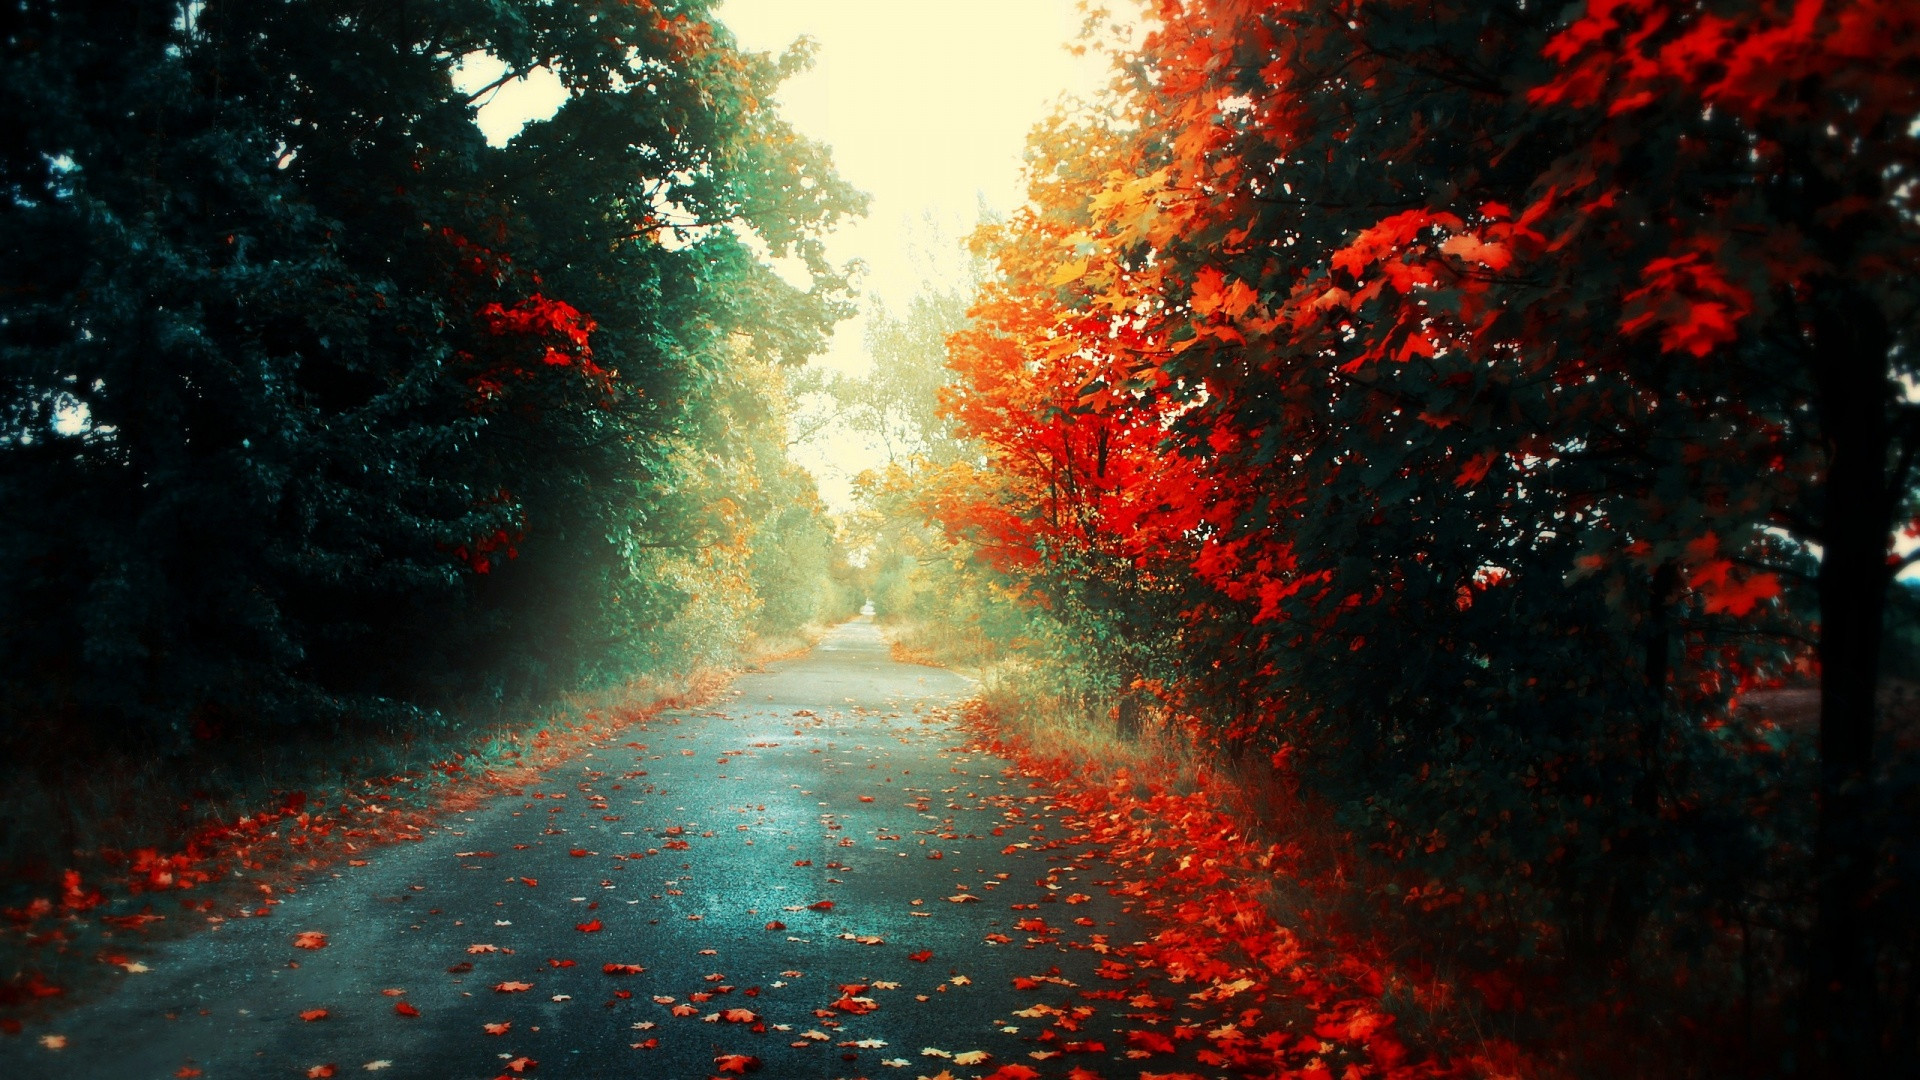 Road Autumn Wallpapers HD